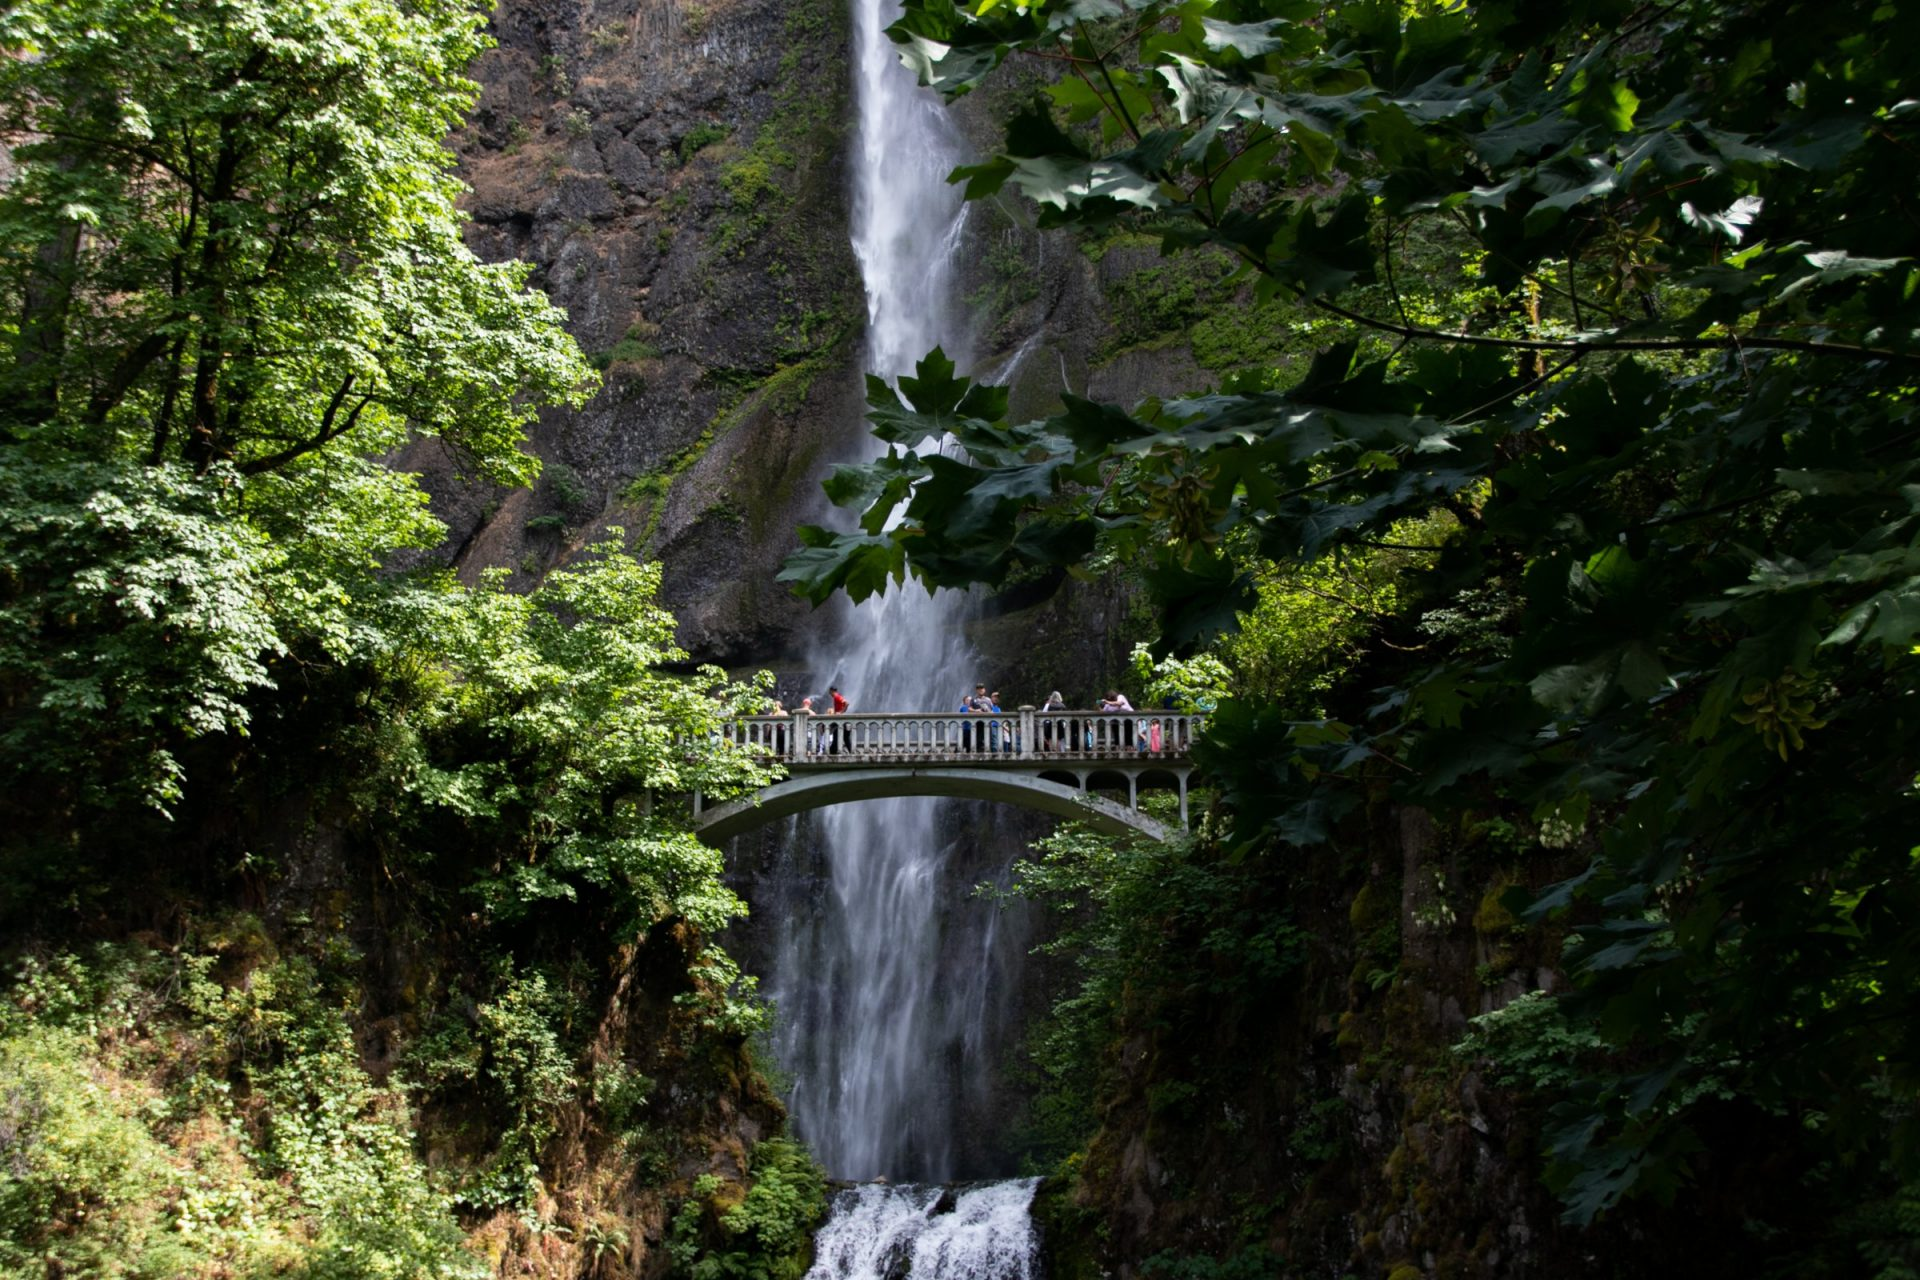 Mountain Waterfall Behind Arch Bridge In Forest